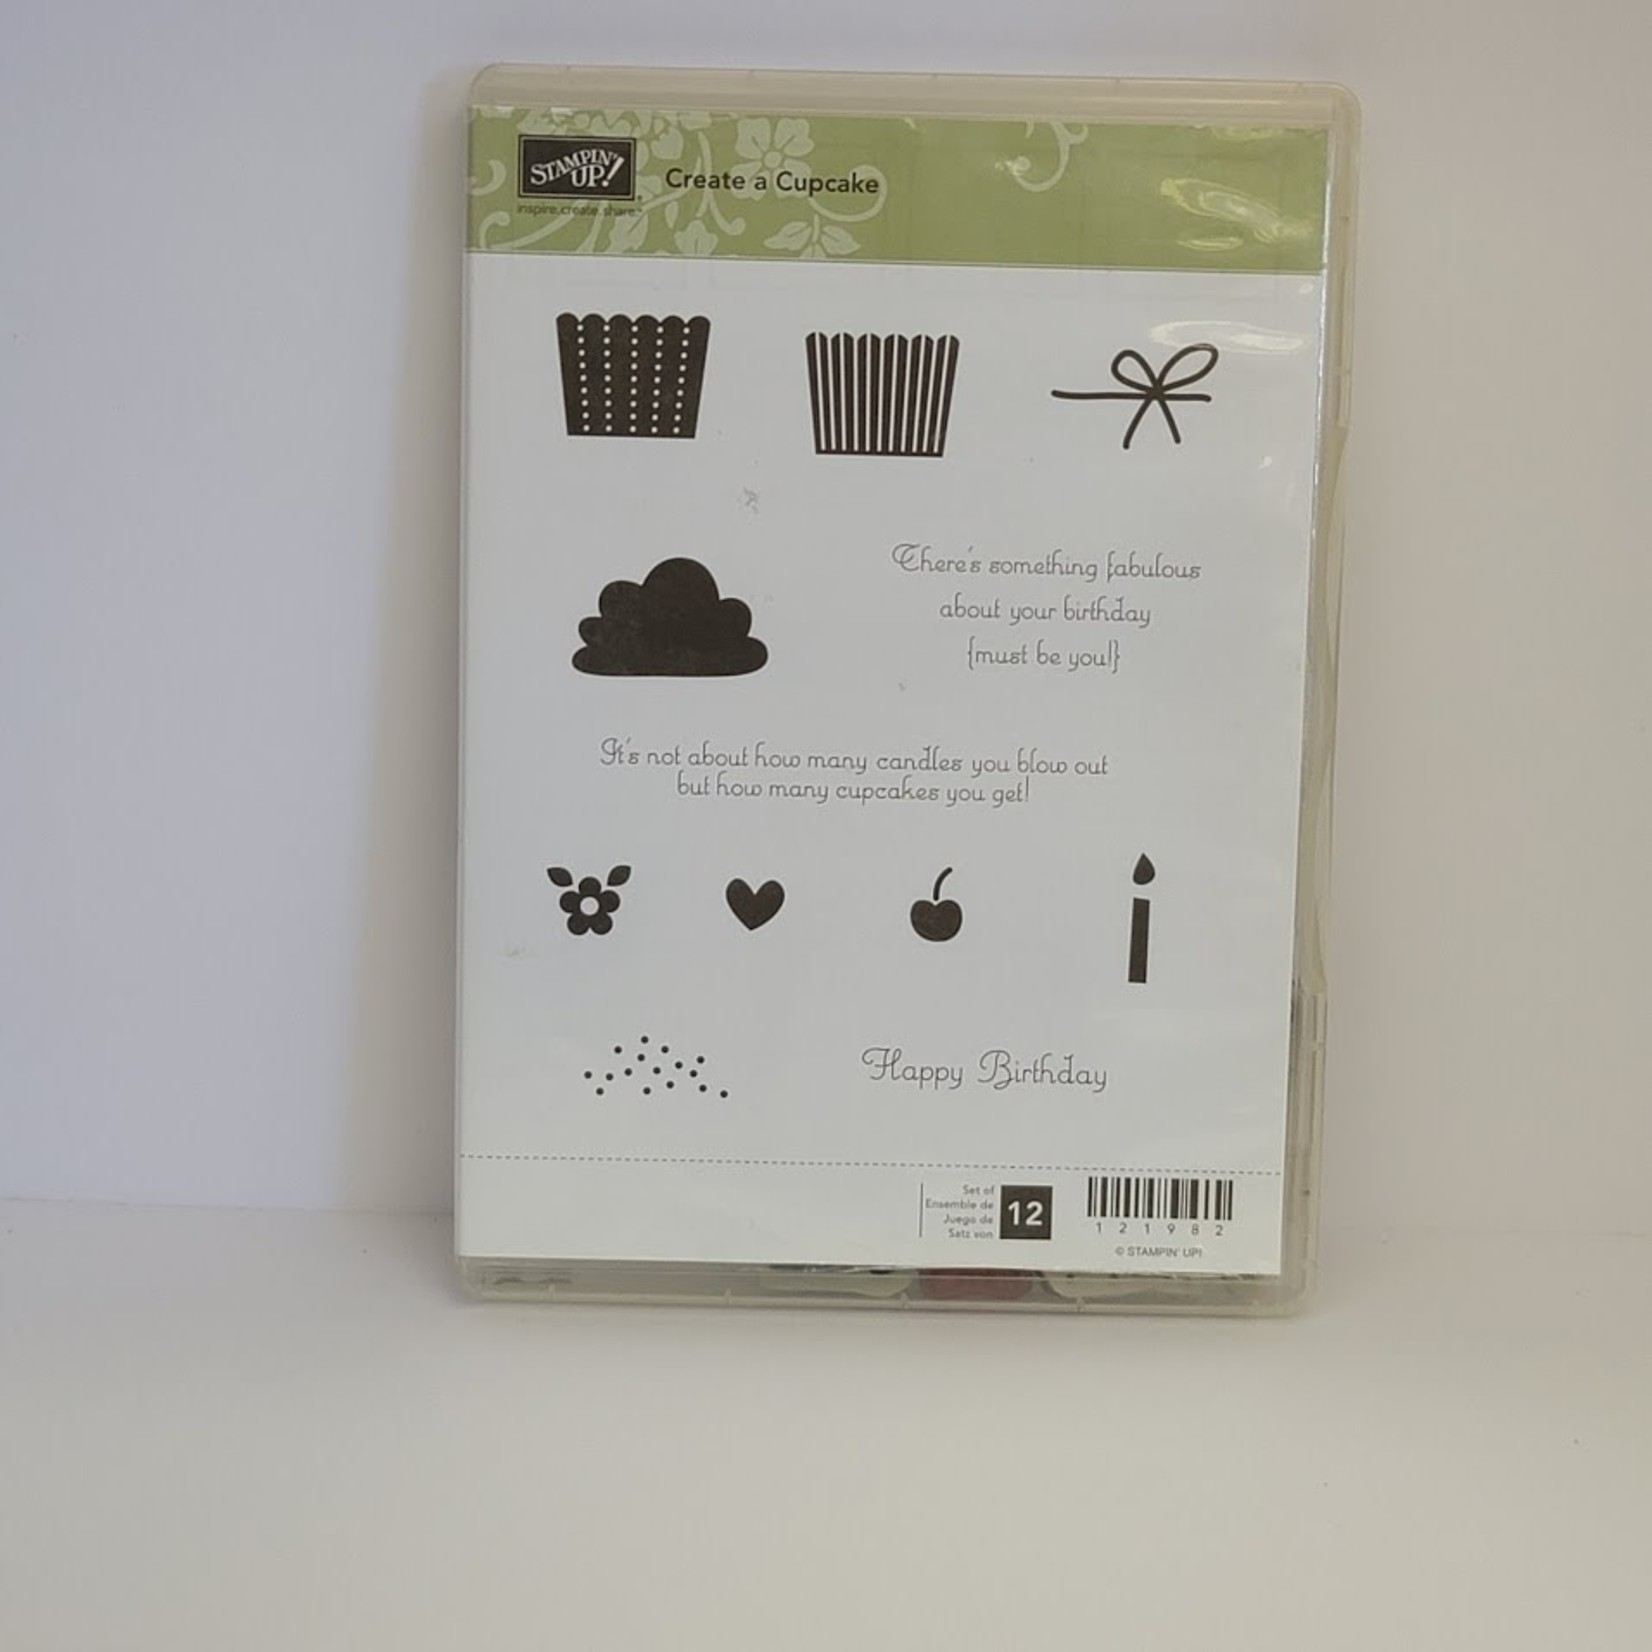 Stampin' Up Stampin' Up - Cling Stamps - Create a Cupcake